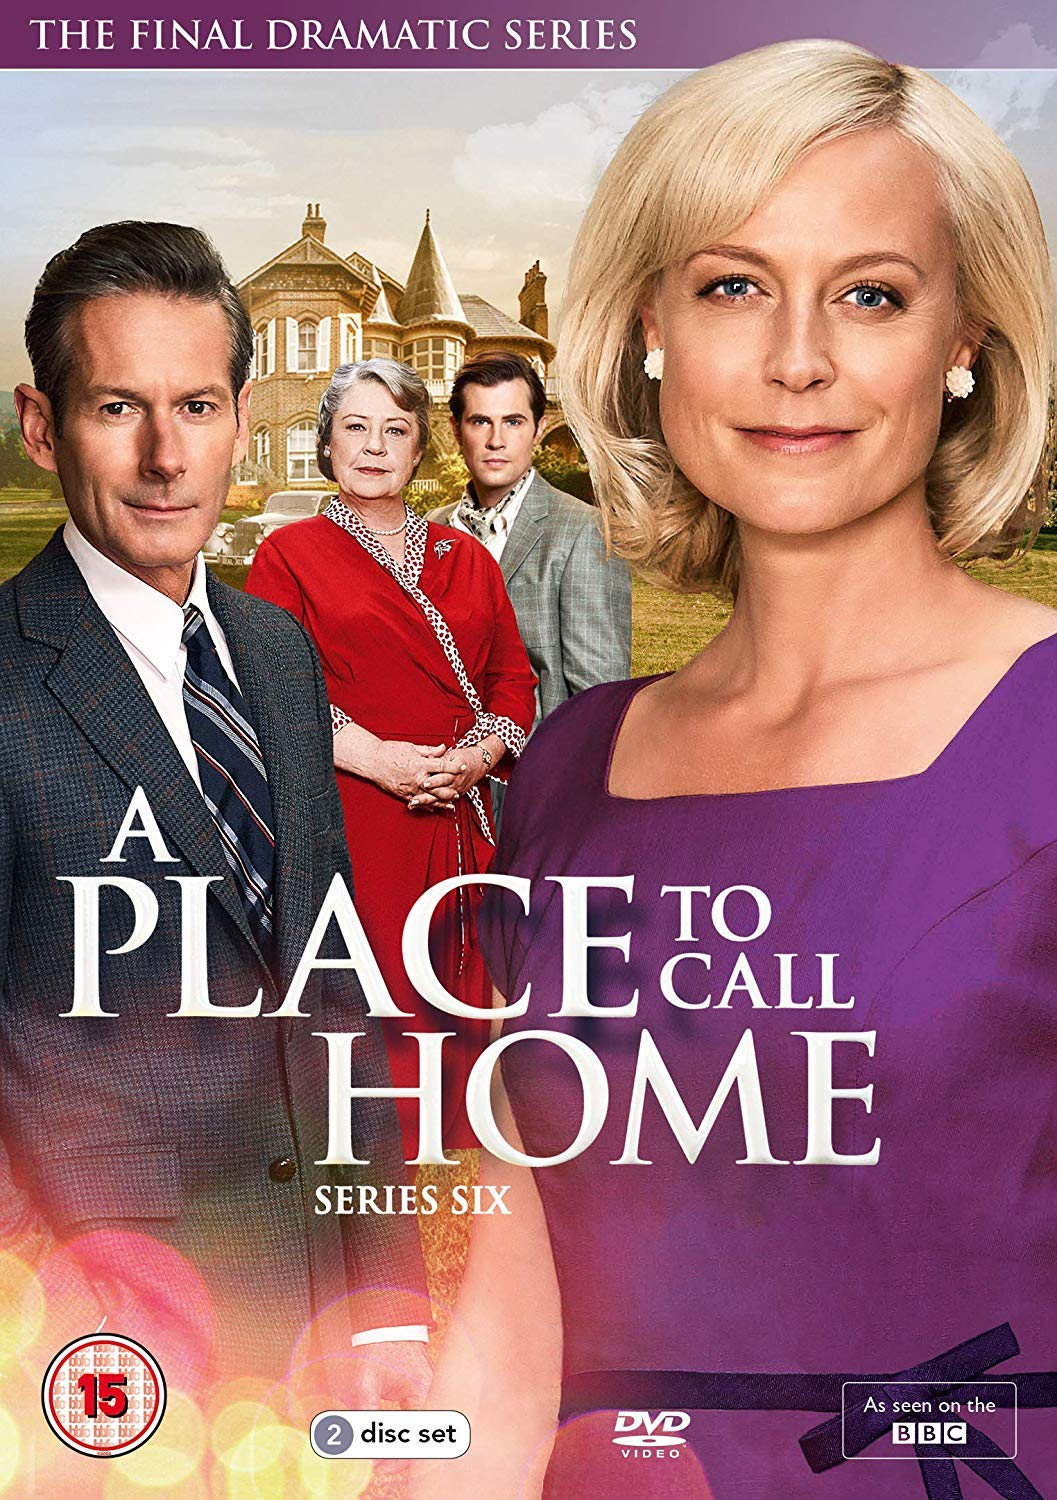 a place to call home by deborah smith reviews a place called home book A Place to Call Home - Series Six [DVD]: Amazon.co.uk: Marta Dusseldorp,  Noni Hazlehurst, Brett Climo, Craig Hall, David Berry, Abby Earl: DVD u0026  Blu-ray